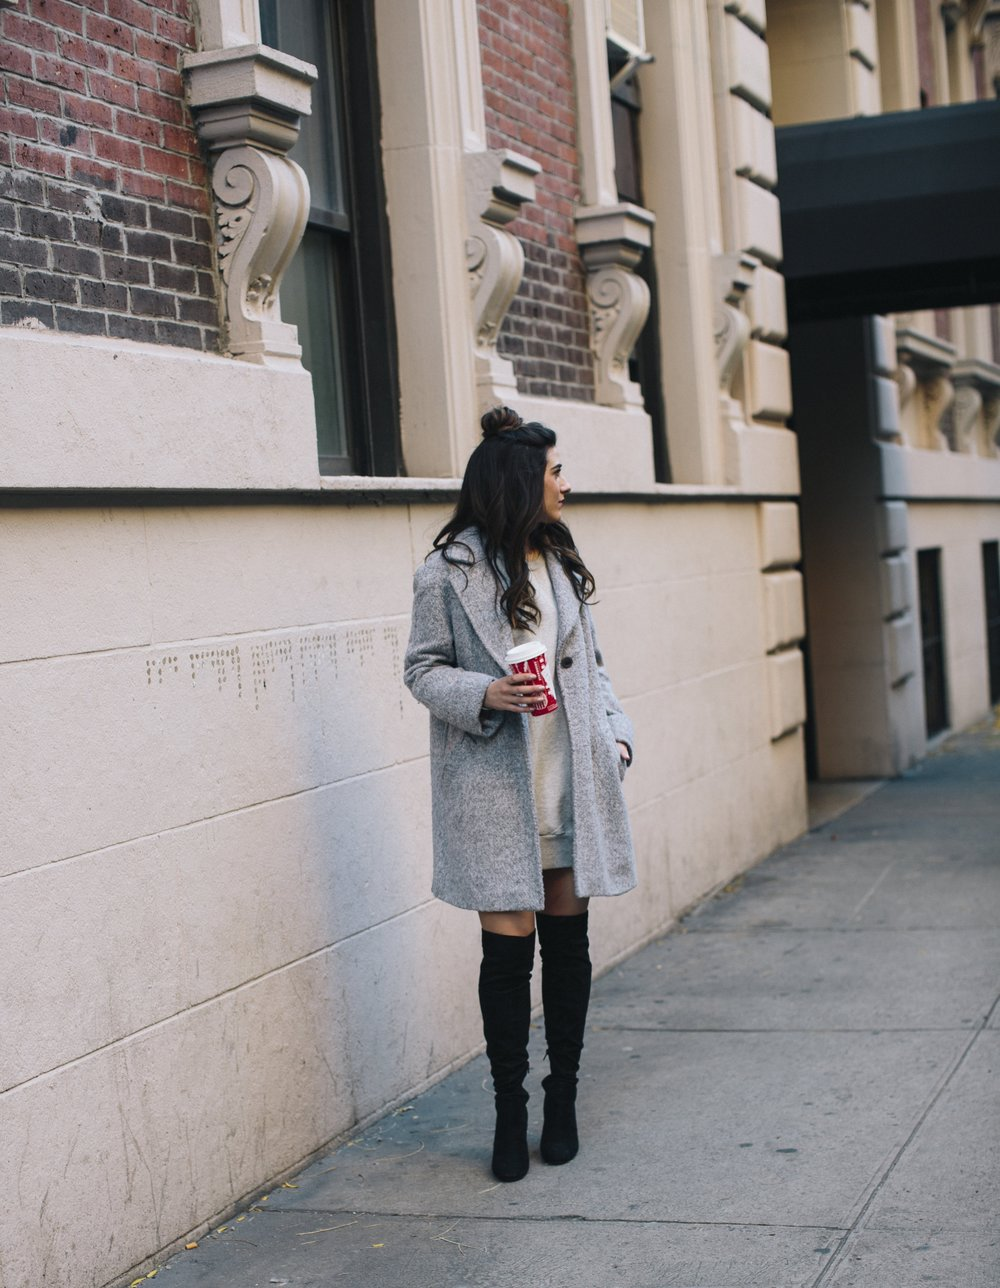 All Grey Look OTK Boots Why I Hate Fashion Week Esther Santer Fashion Blog Louboutins & Love NYC Street Style Blogger Outfit OOTD Trendy Sweatshirt Dress Topknot Coat Women Girl Shoes Shopping Zara Monochome Beauty Accessories Winter Wear Clothes Look.jpg